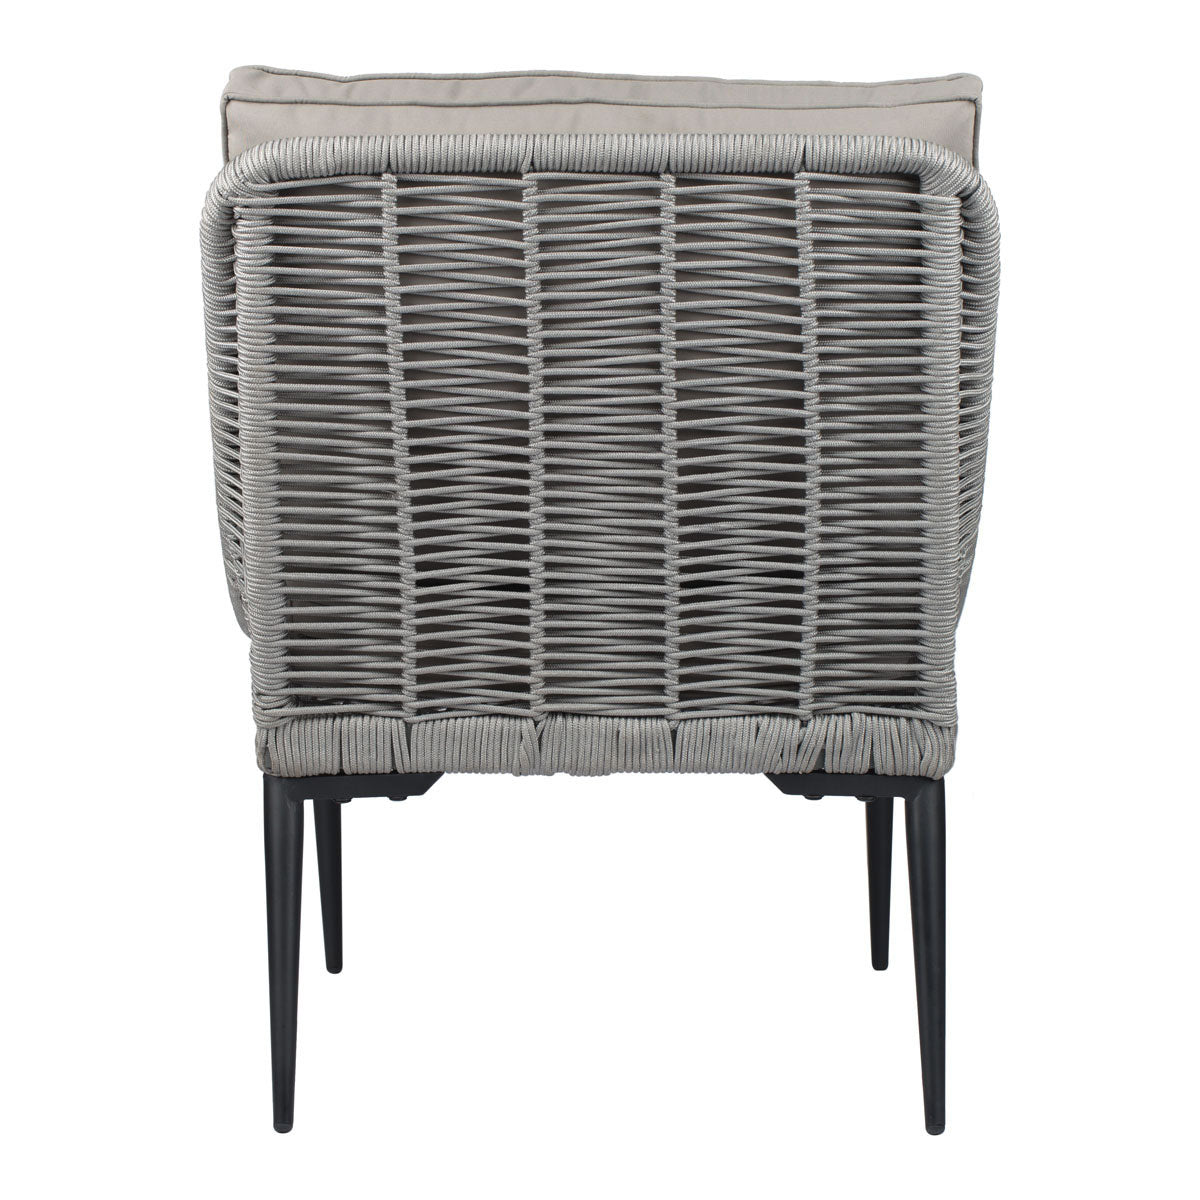 Cabada Outdoor Chair Gray